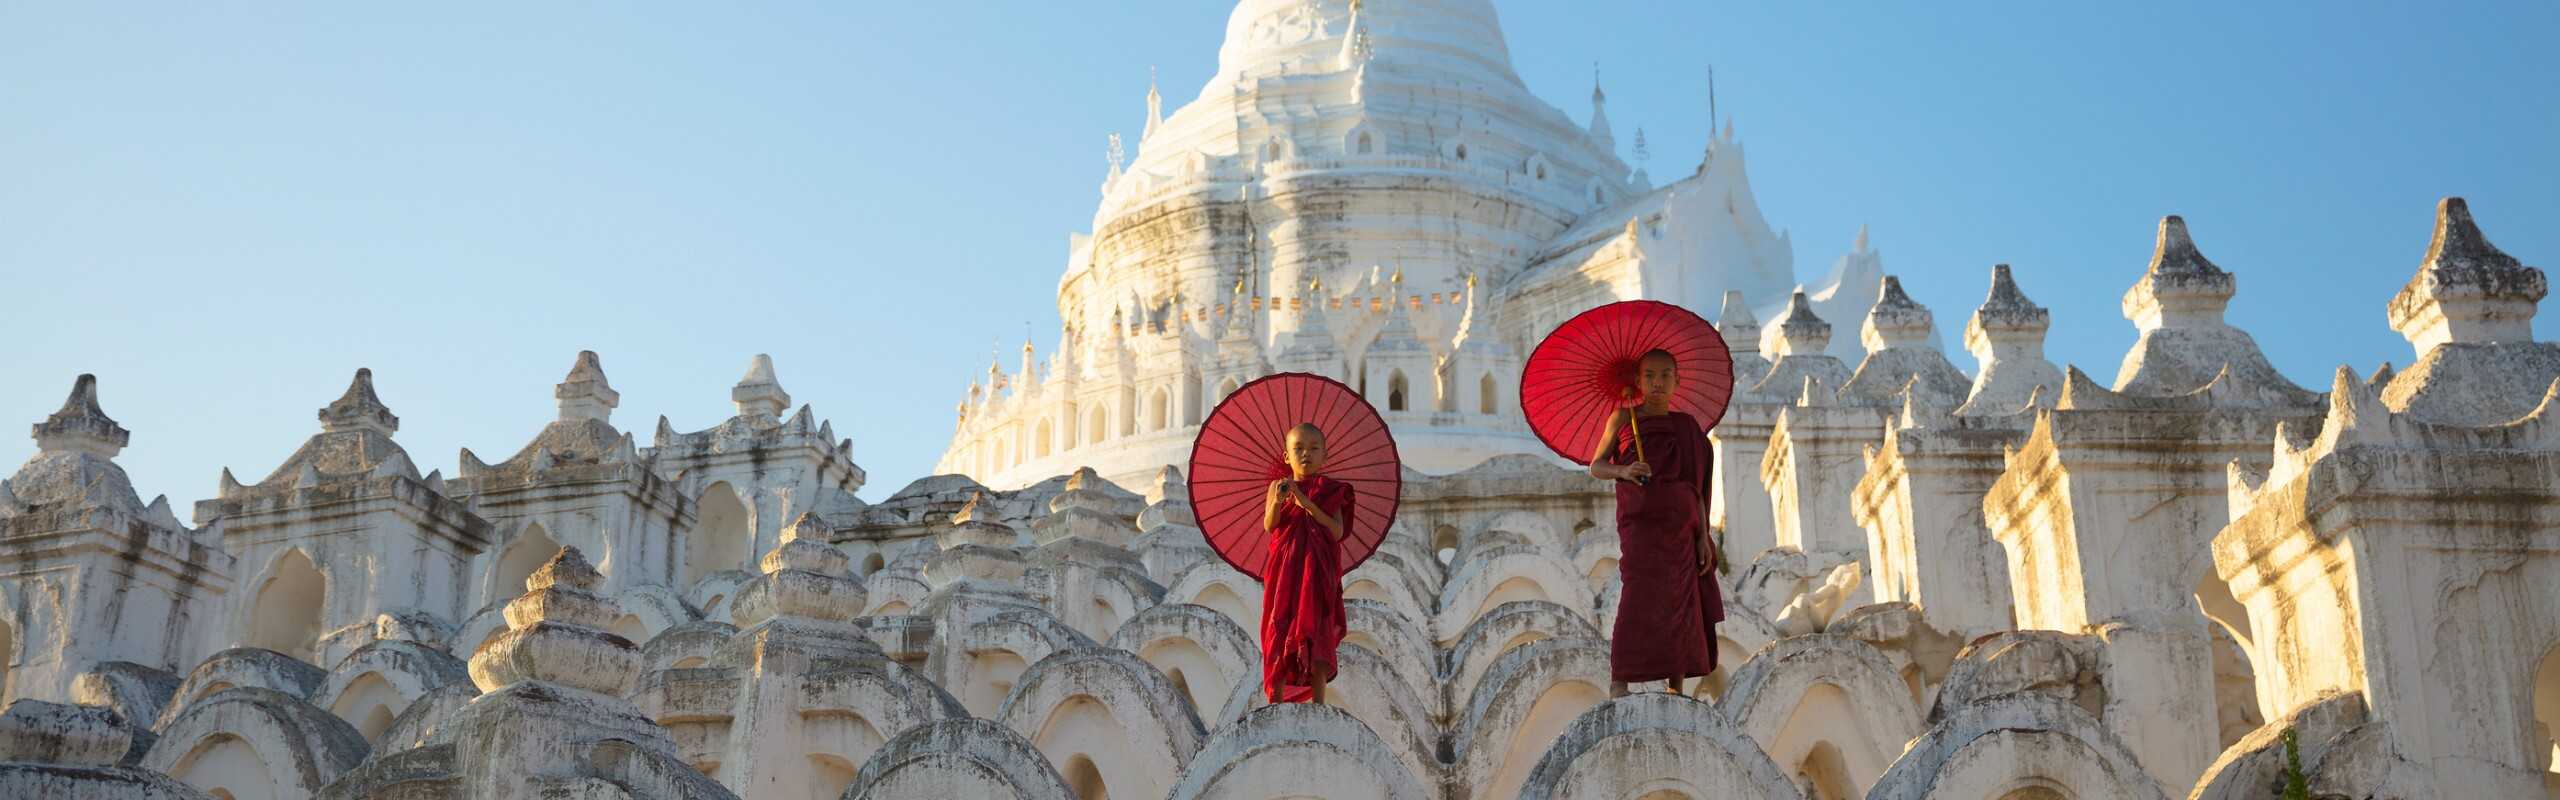 Mandalay Weather - Best Time to Visit Mandalay